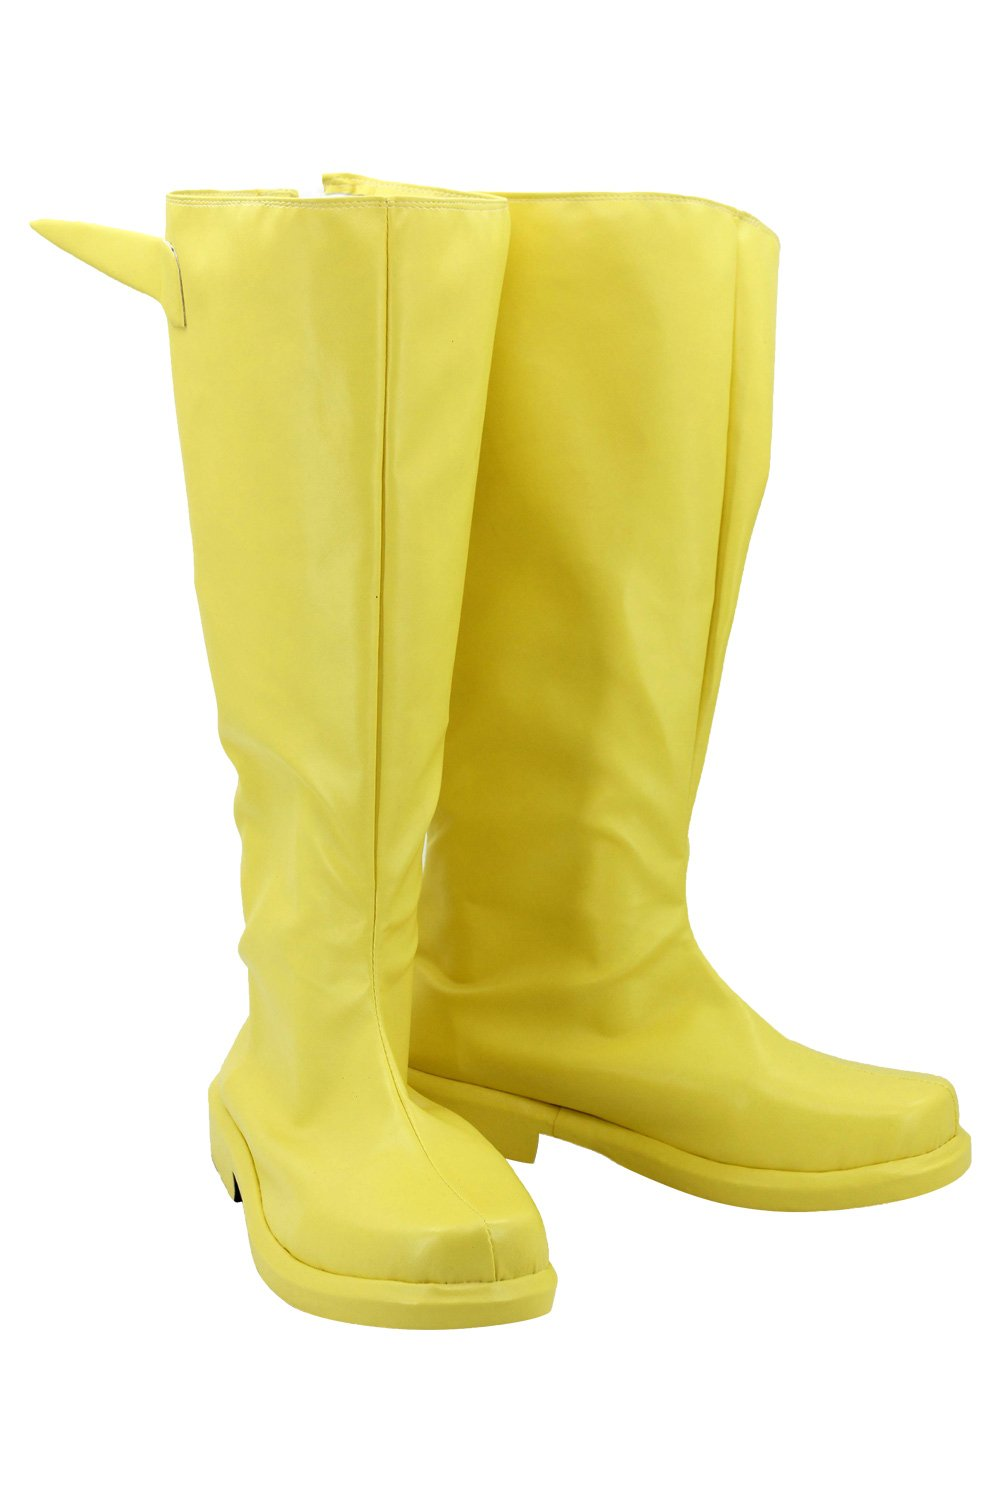 The Flash Barry Allen Yellow Cosplay Shoes boots